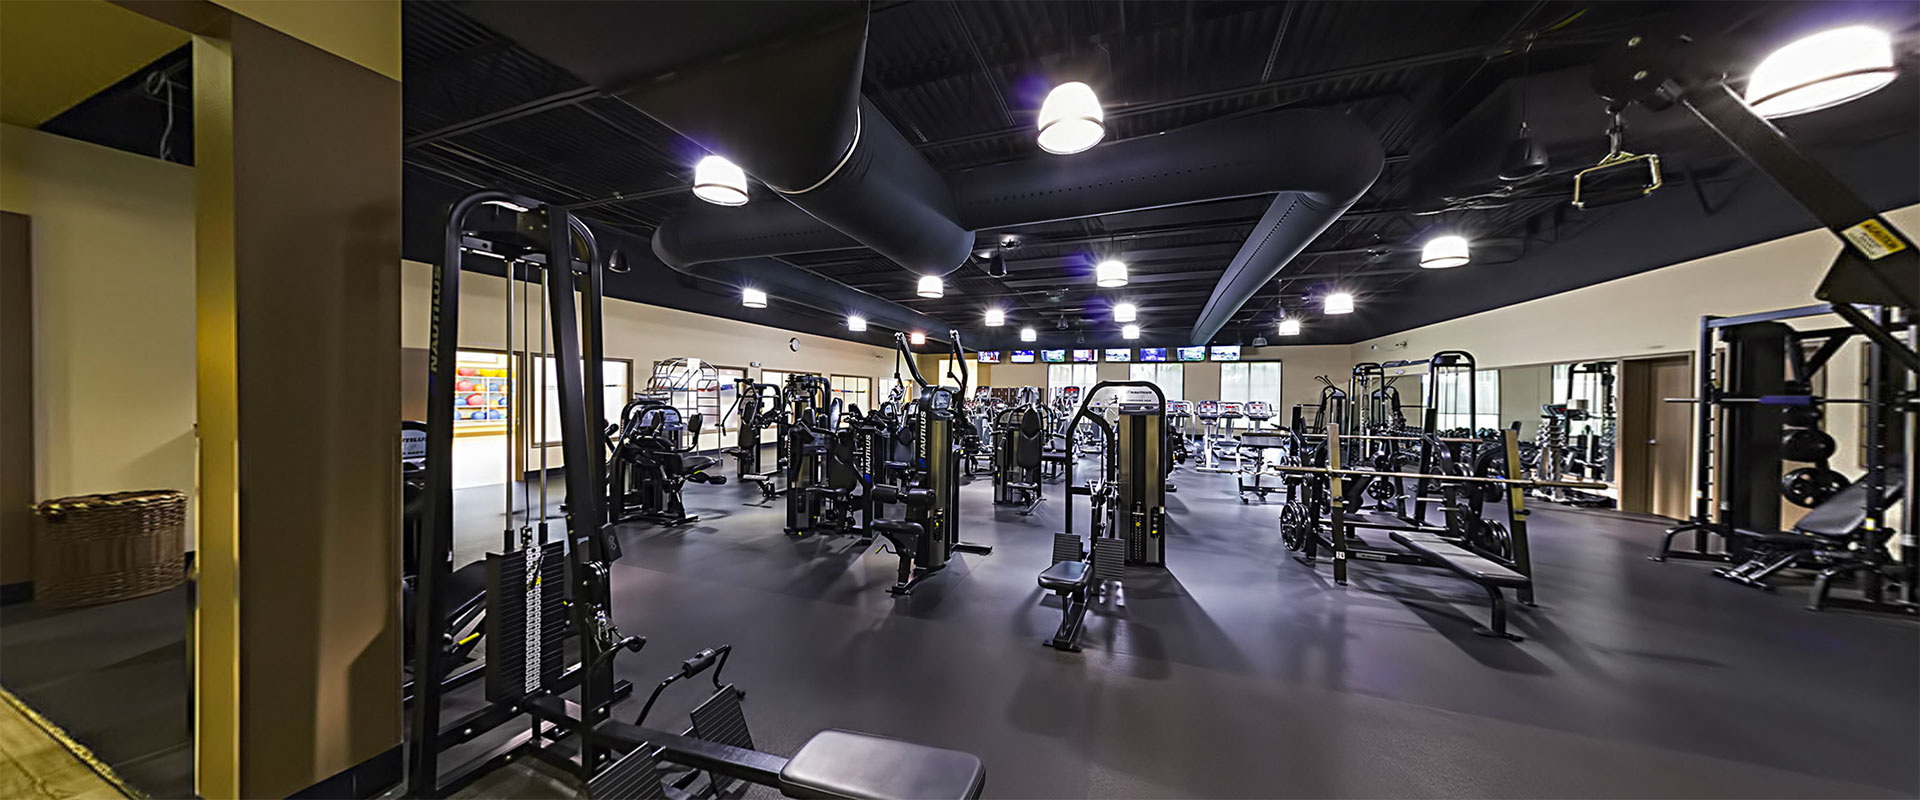 The ranch fitness center spa for Salon fitness